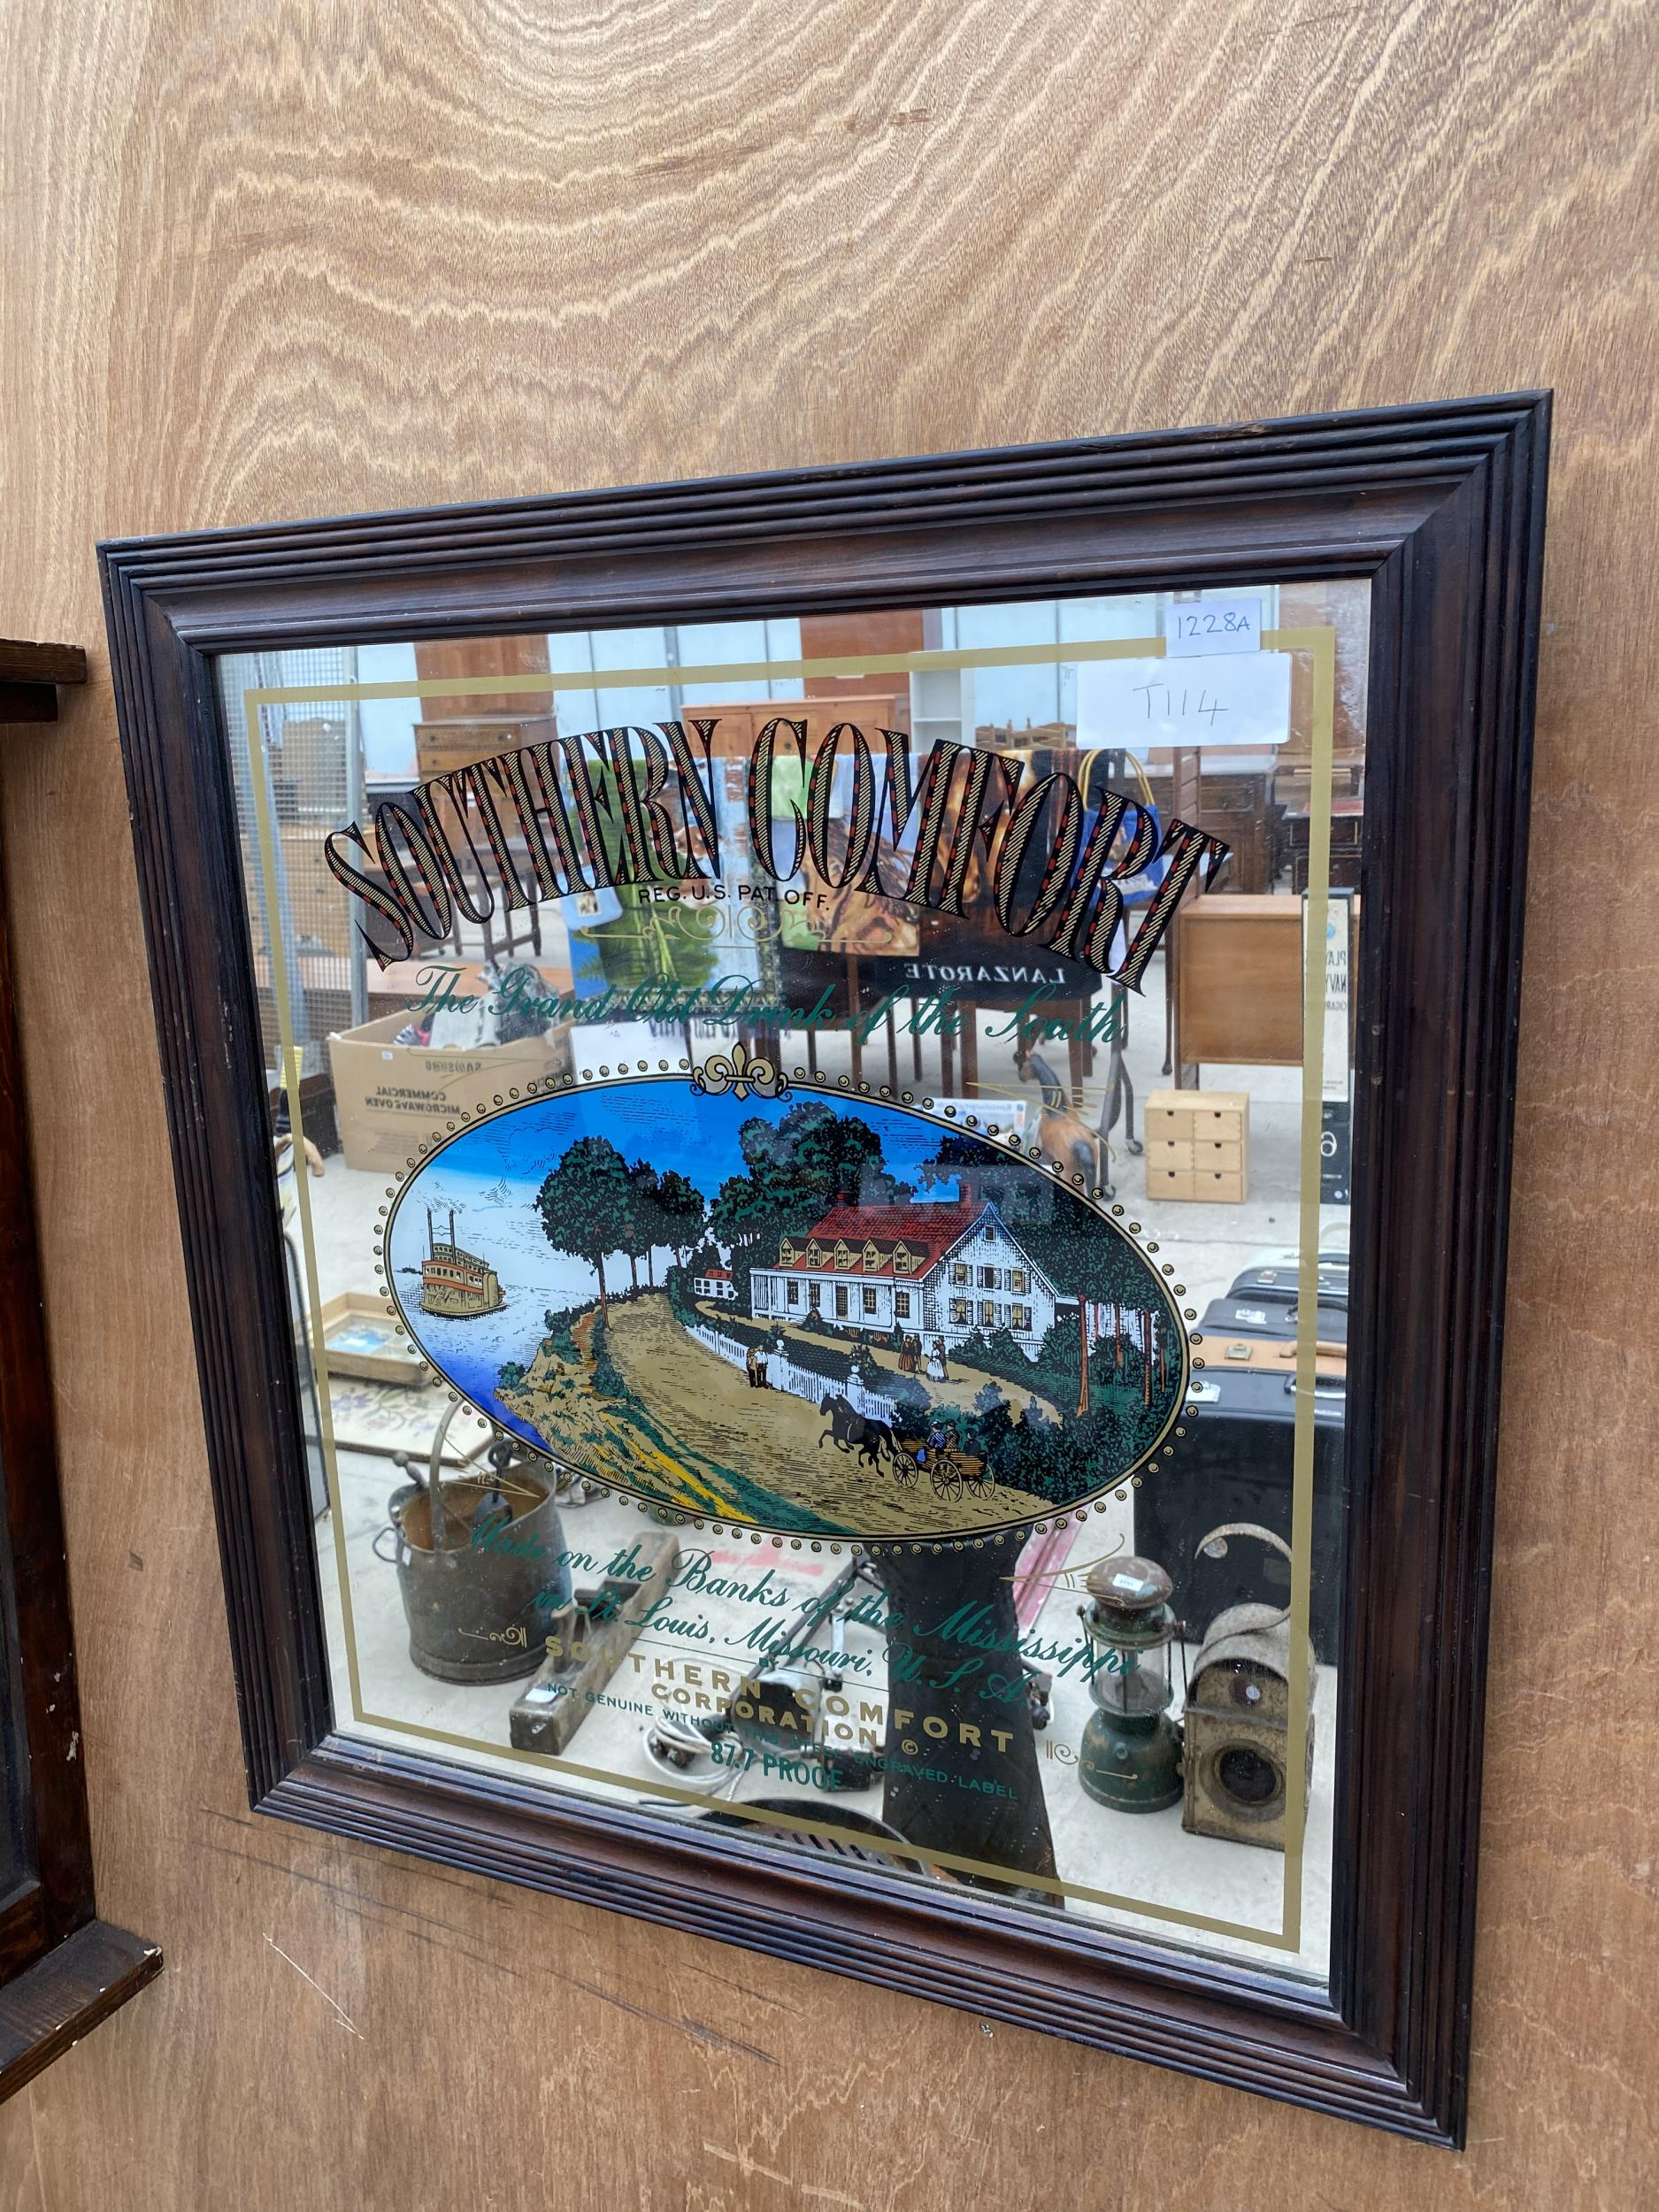 A WOODEN FRAMED 'SOUTHERN COMFORT' ADVERTISING PUB MIRROR